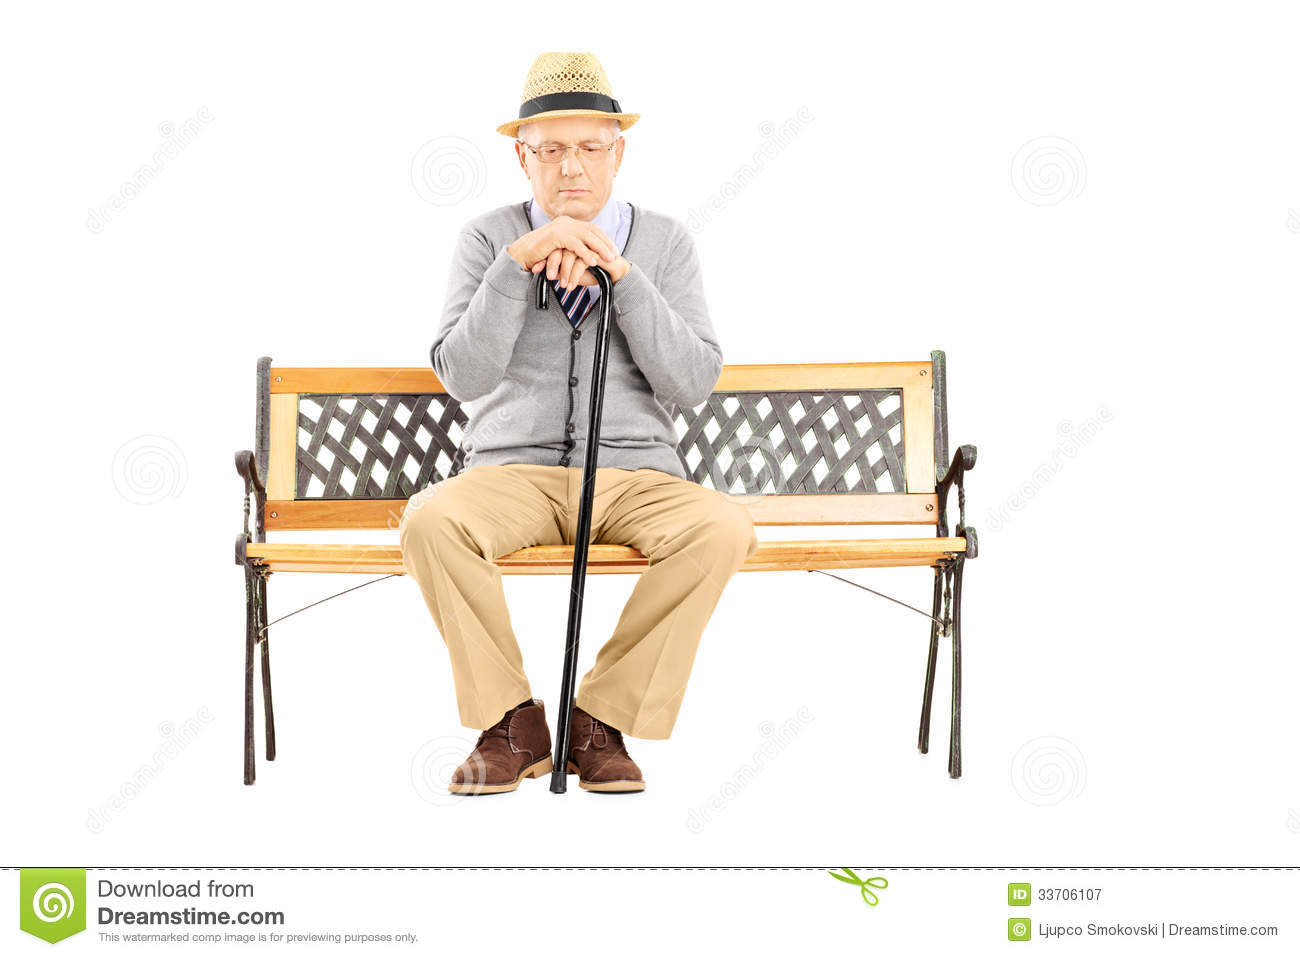 ... man with a cane sitting on a wooden bench isolated on white background